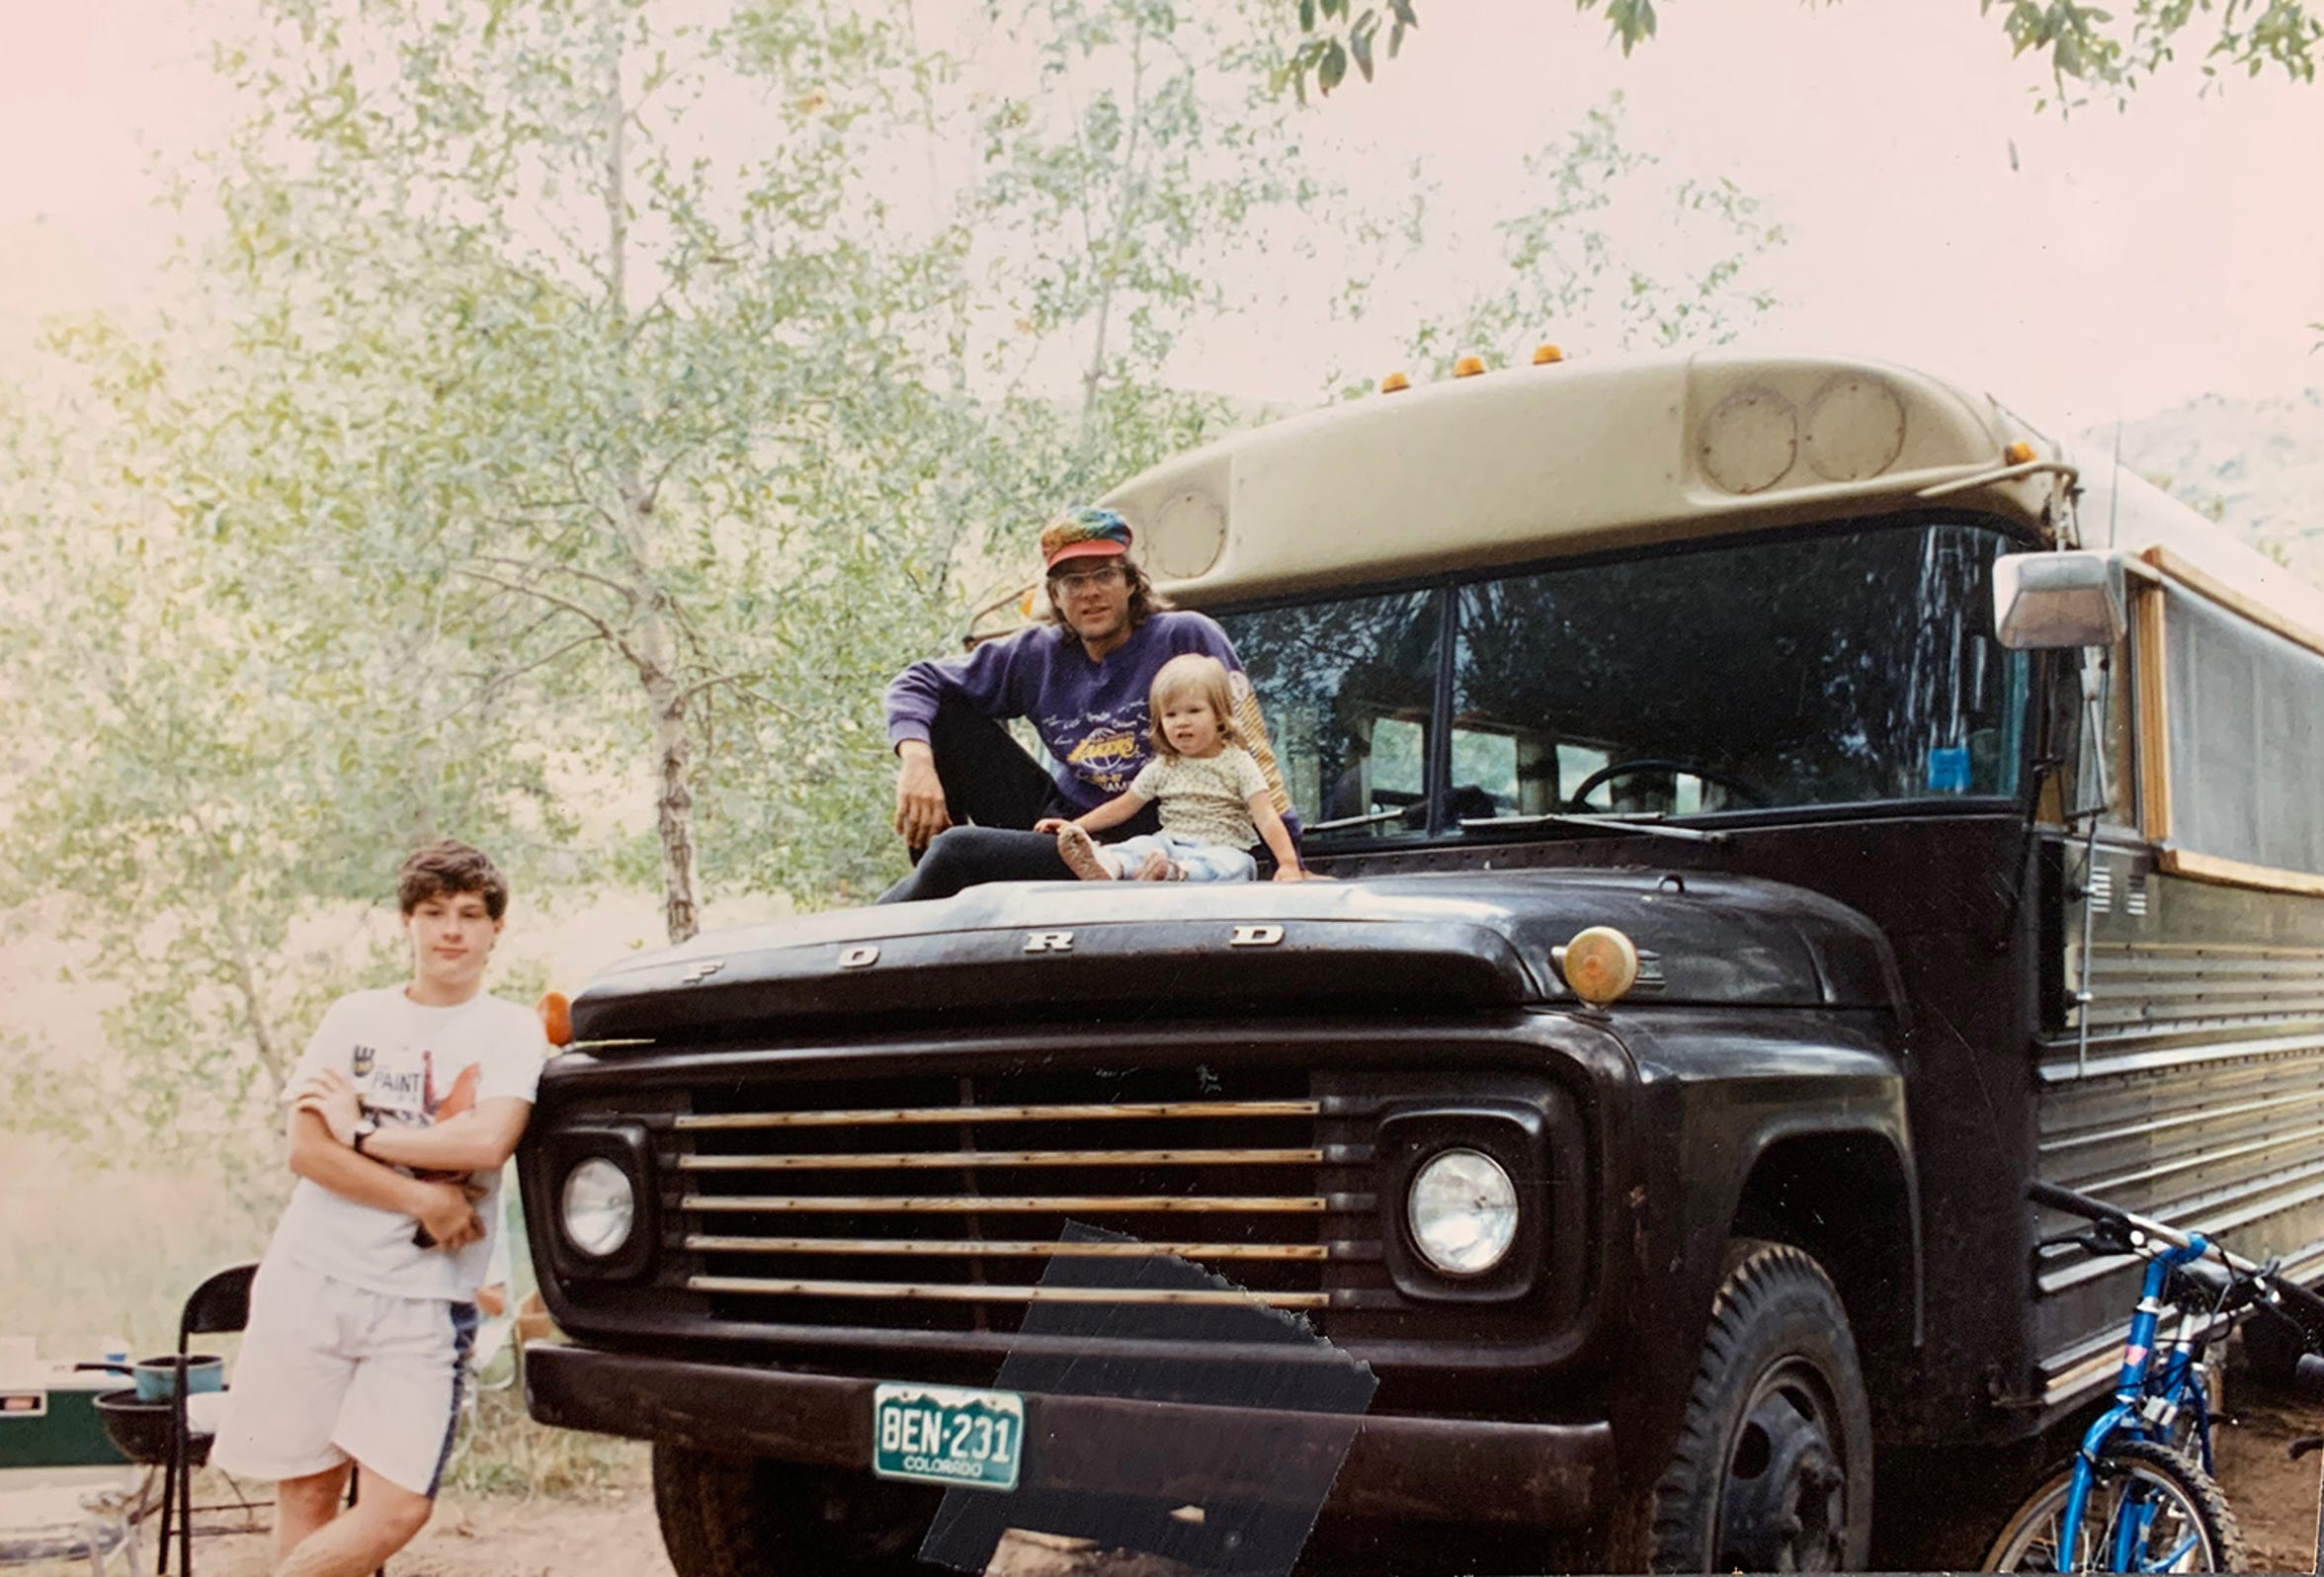 Mieka May (right) with her father, Mystic Mike (middle) and cousin Josh Kline (left)